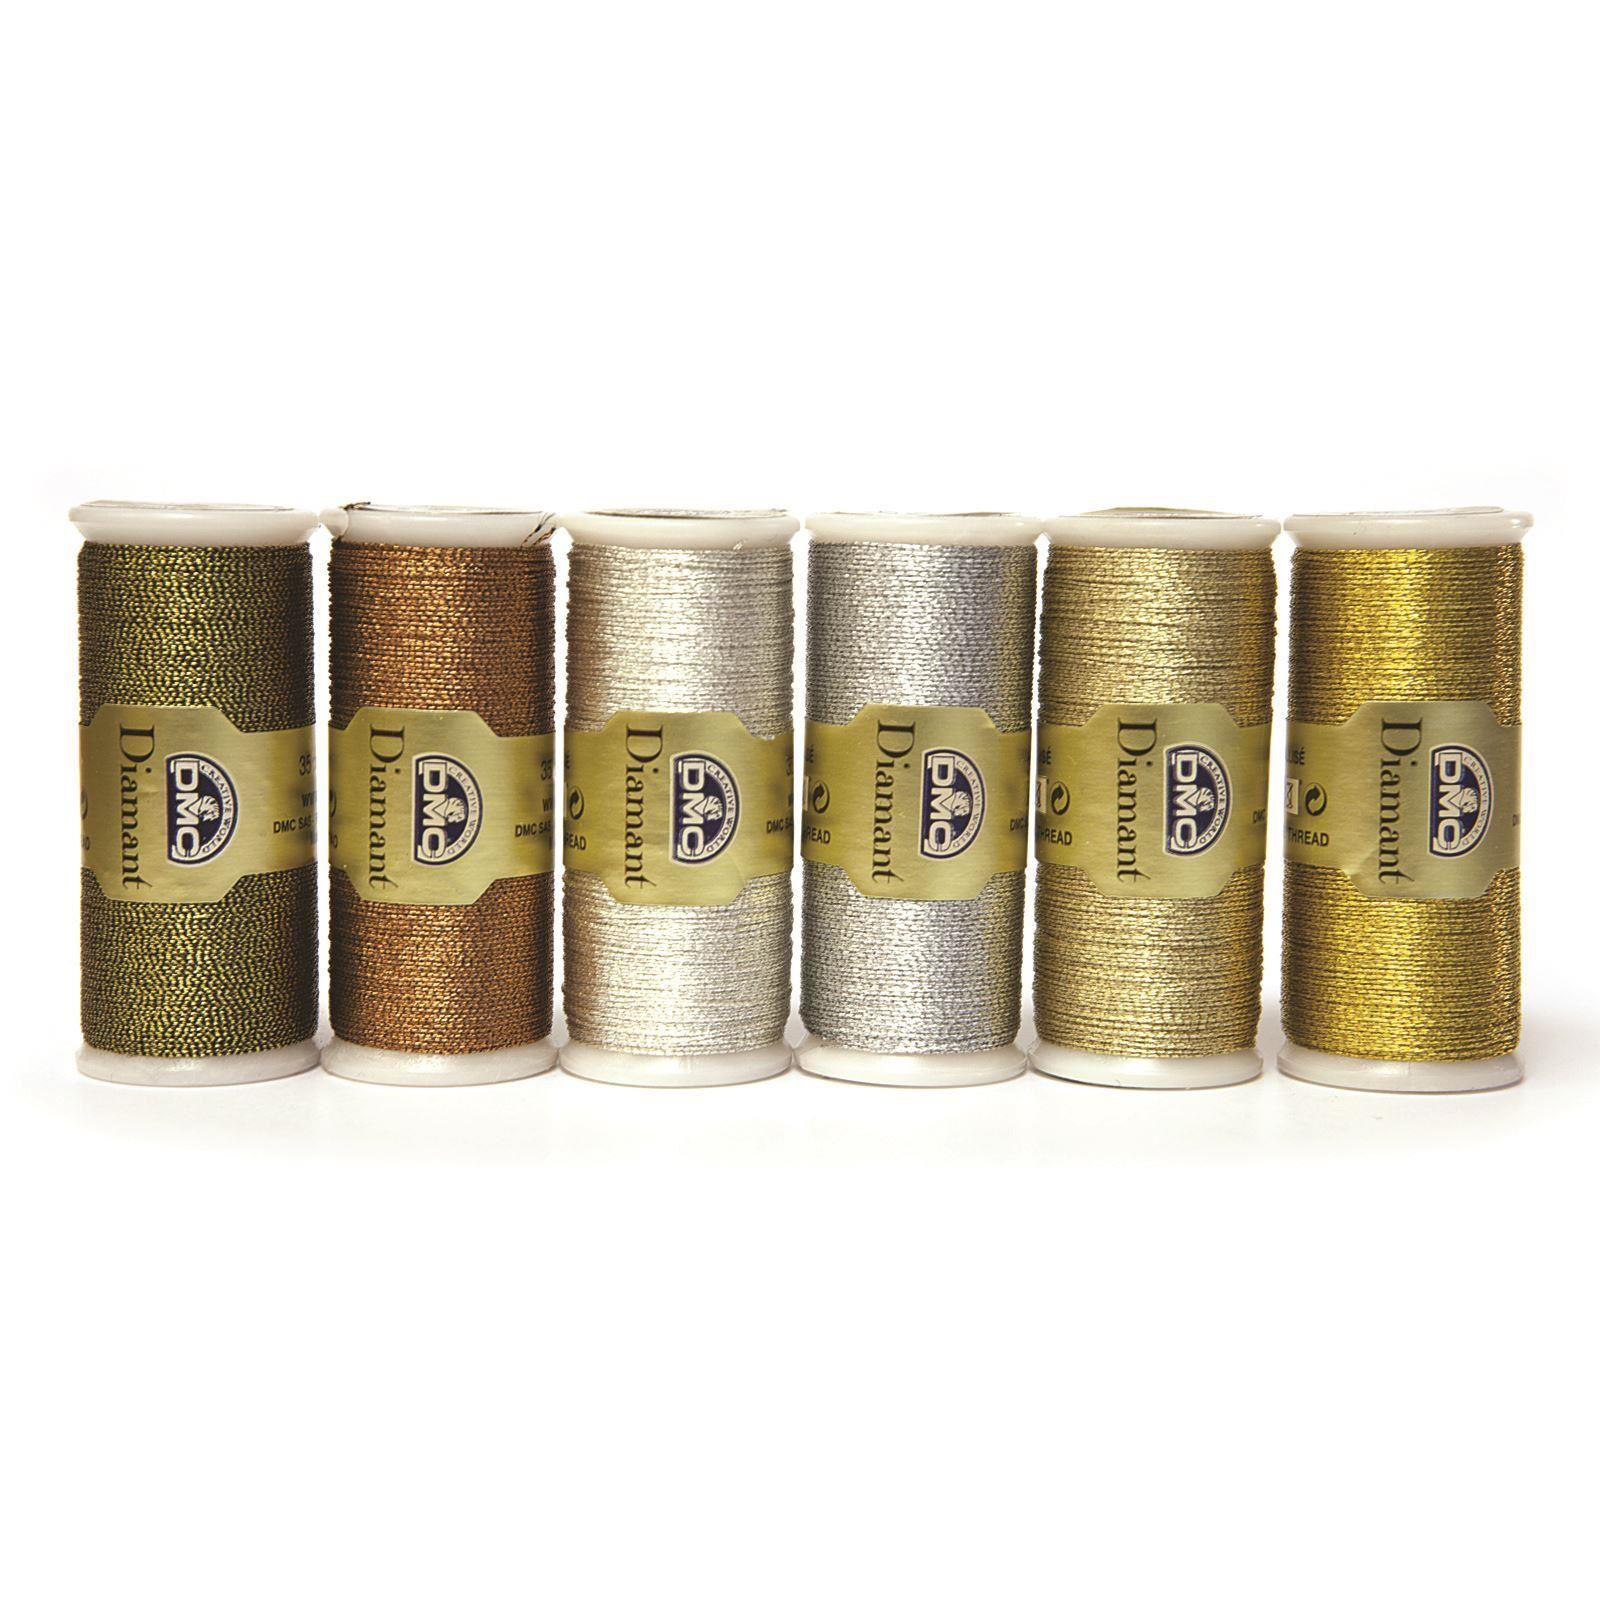 DMC-Diamant-Metallic-Embroidery-Thread-35m-Spool-Cross-Stitch thumbnail 56